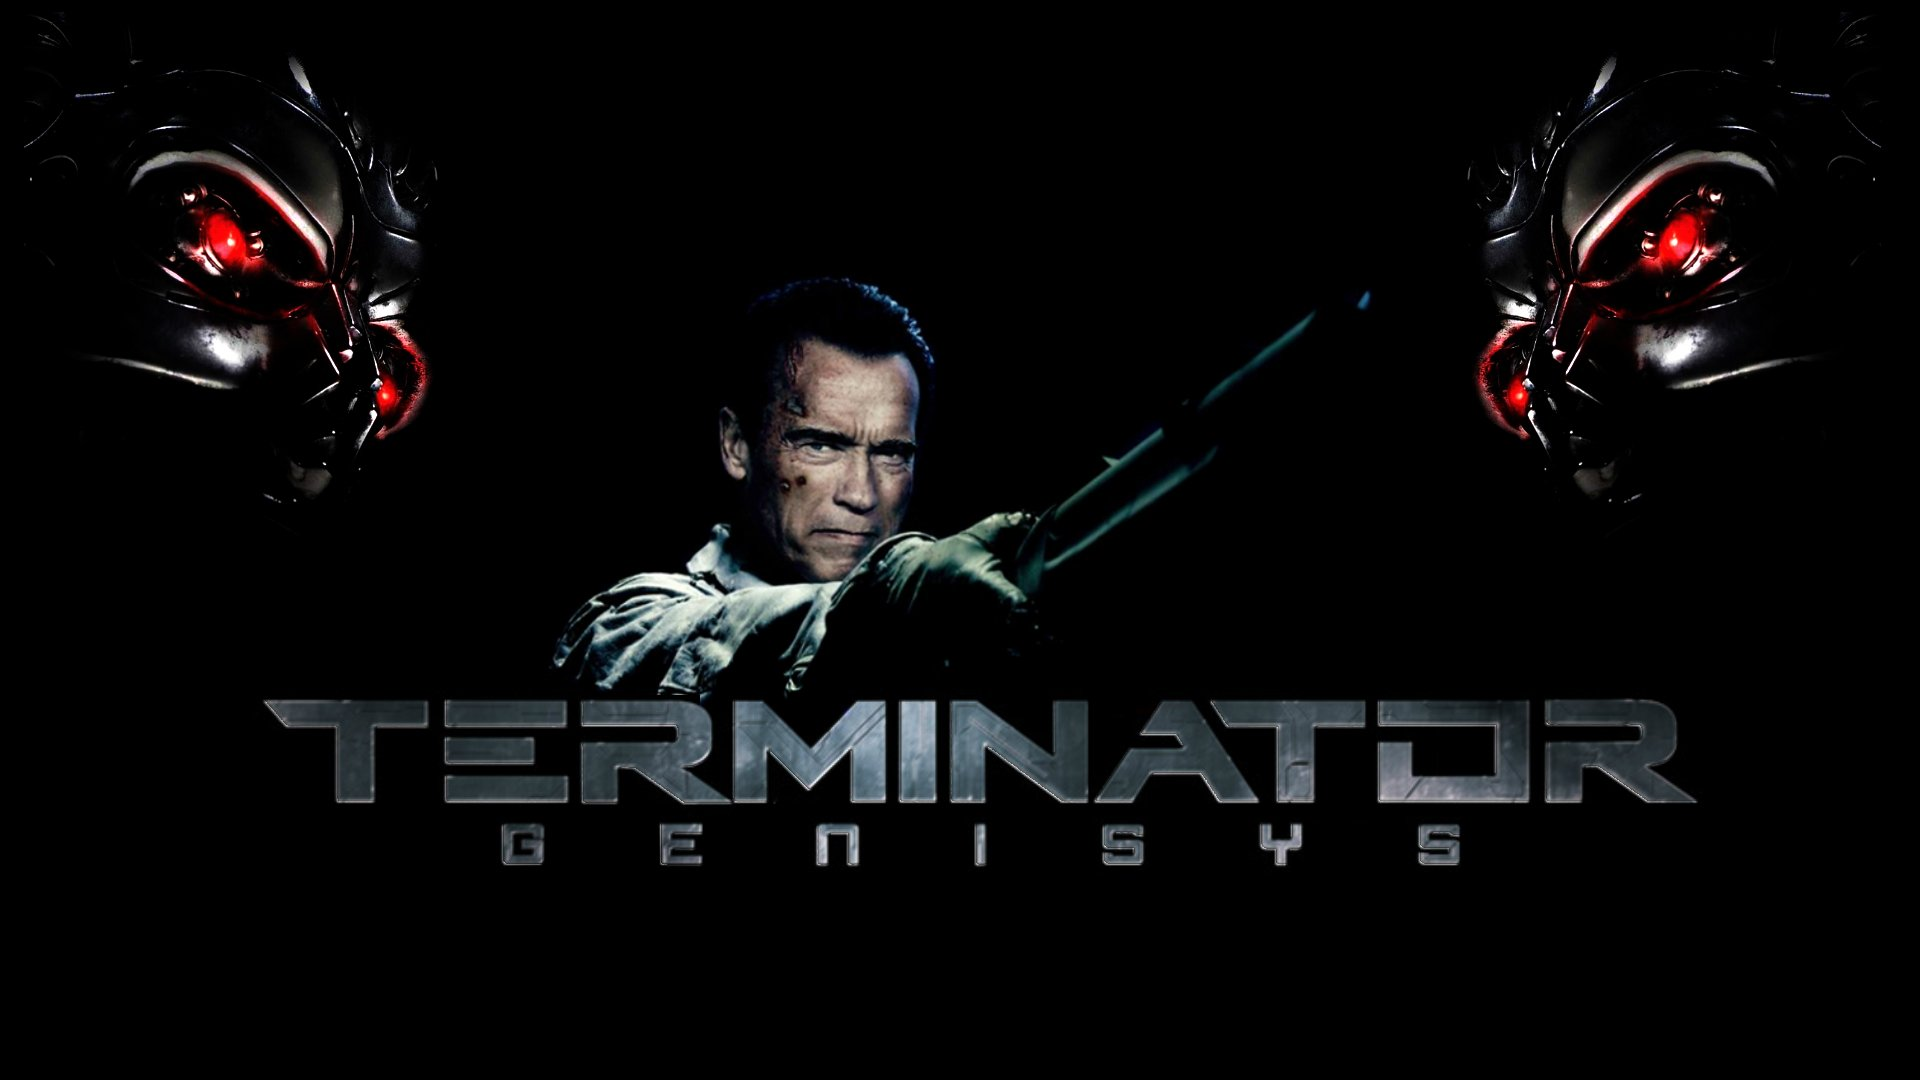 Movie - Terminator Genisys  Wallpaper